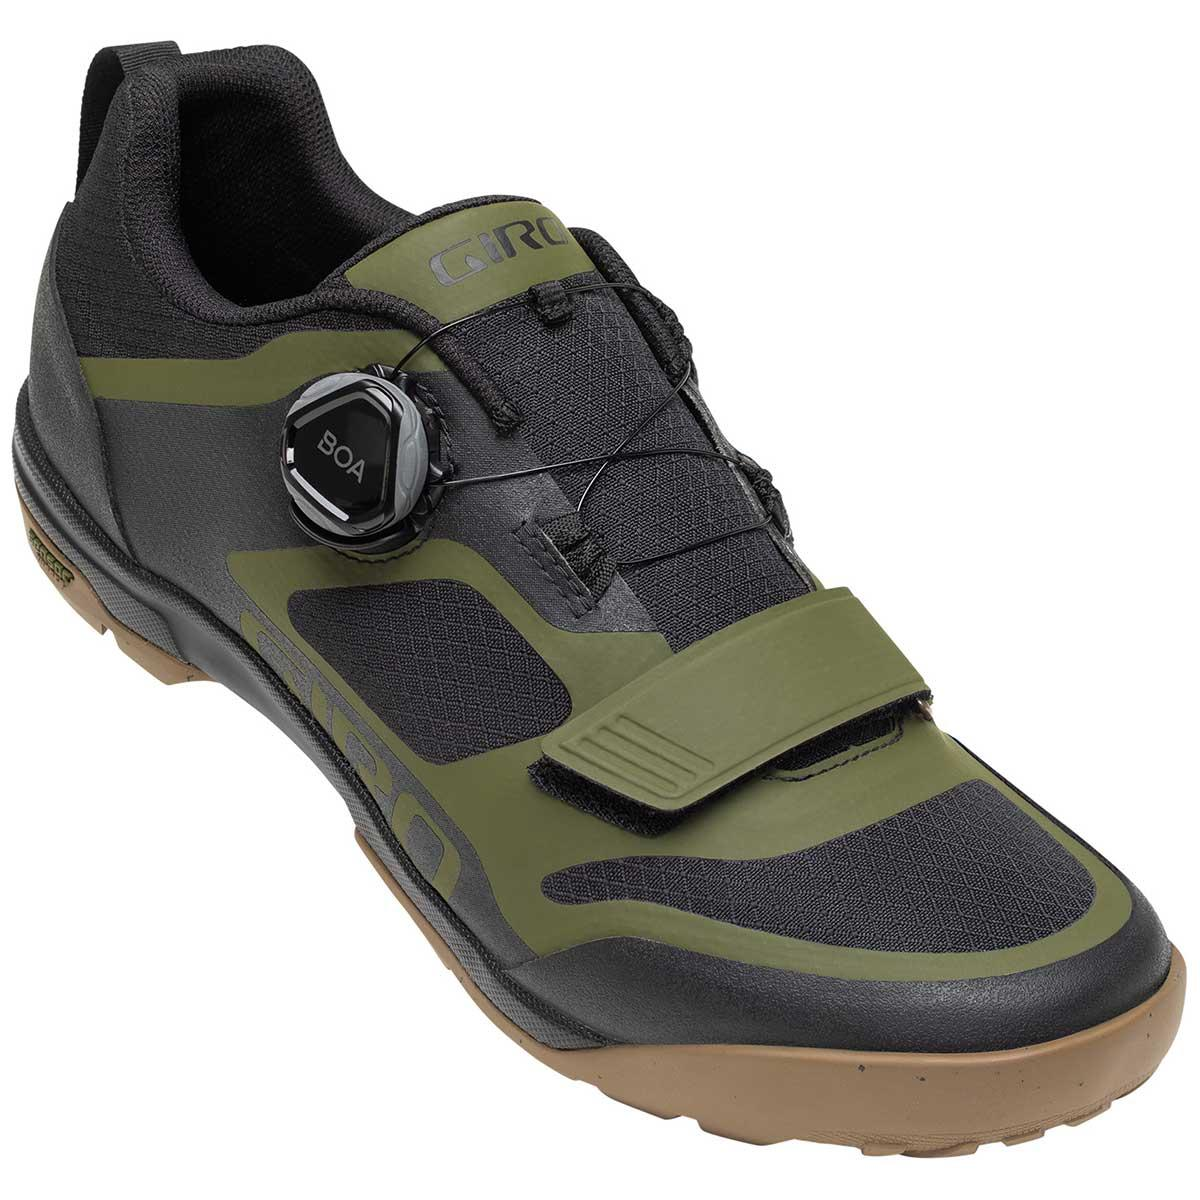 Giro Ventana Shoe in Black and Olive main view